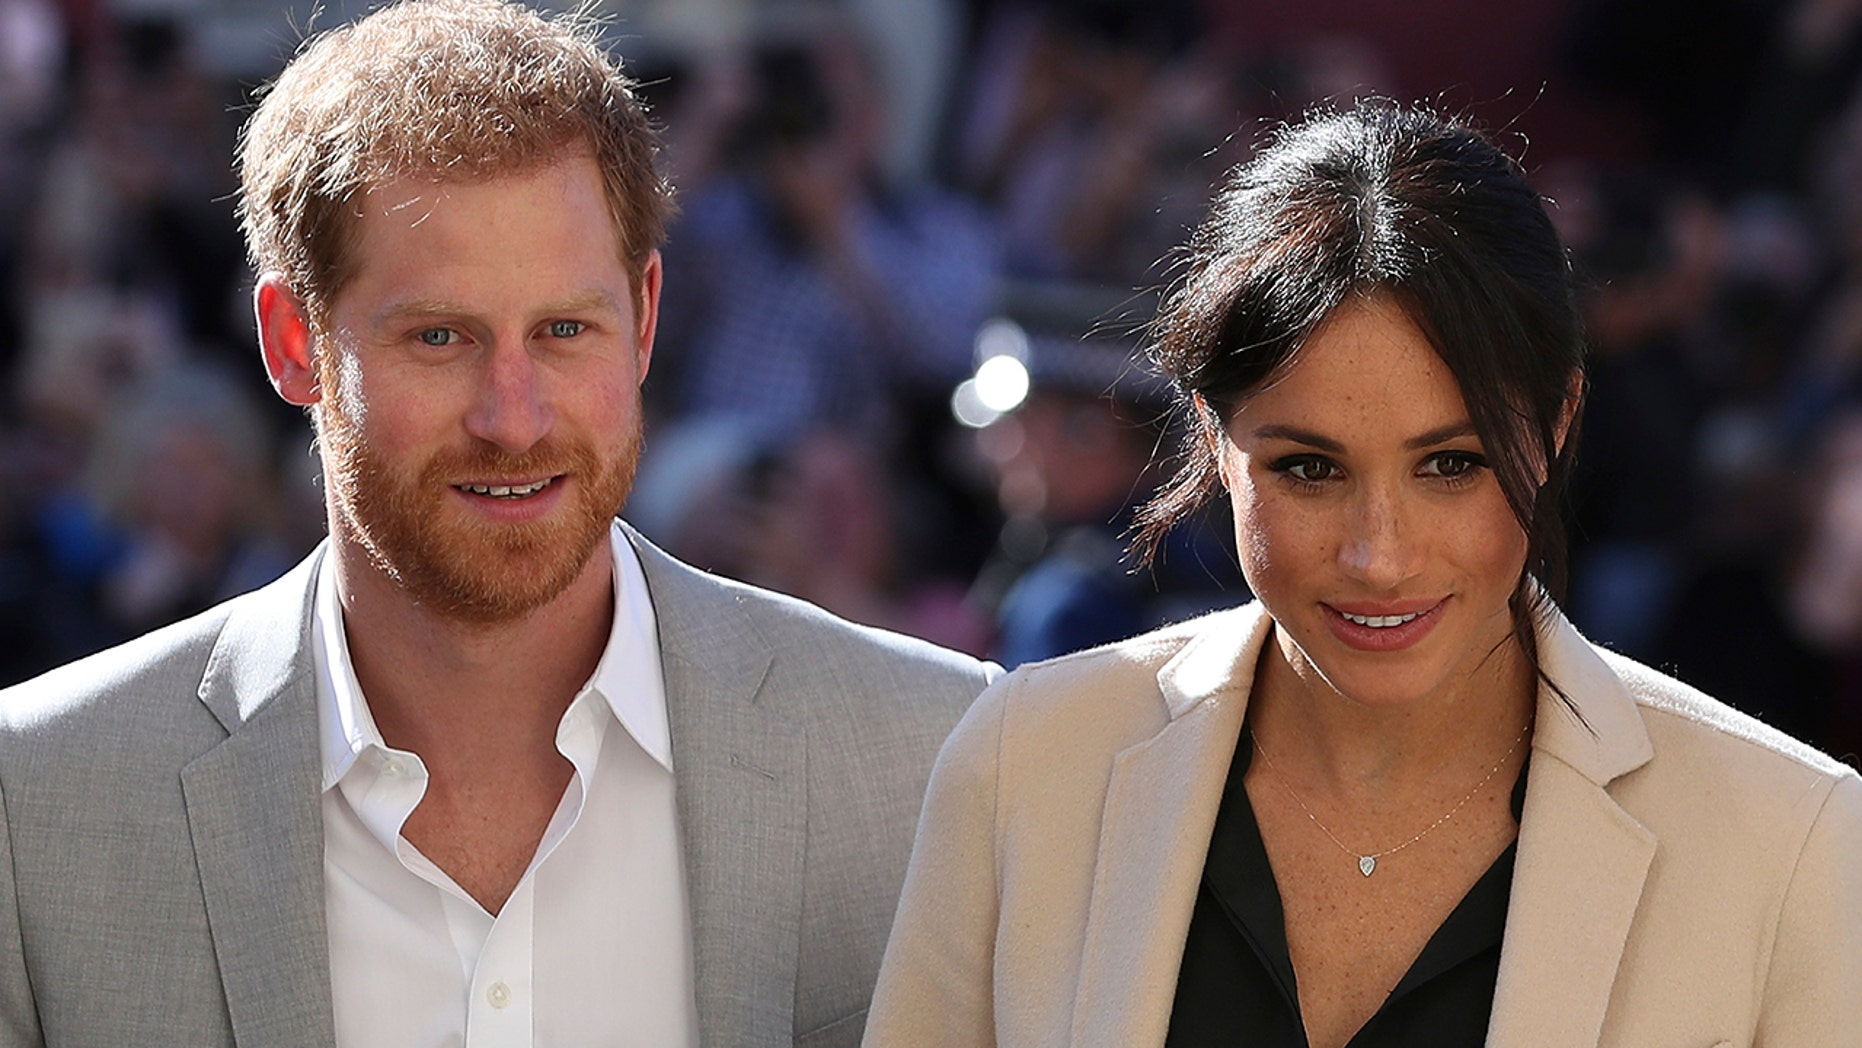 Prince Harry & Meghan Markle Visit Chichester During Tour Of Sussex